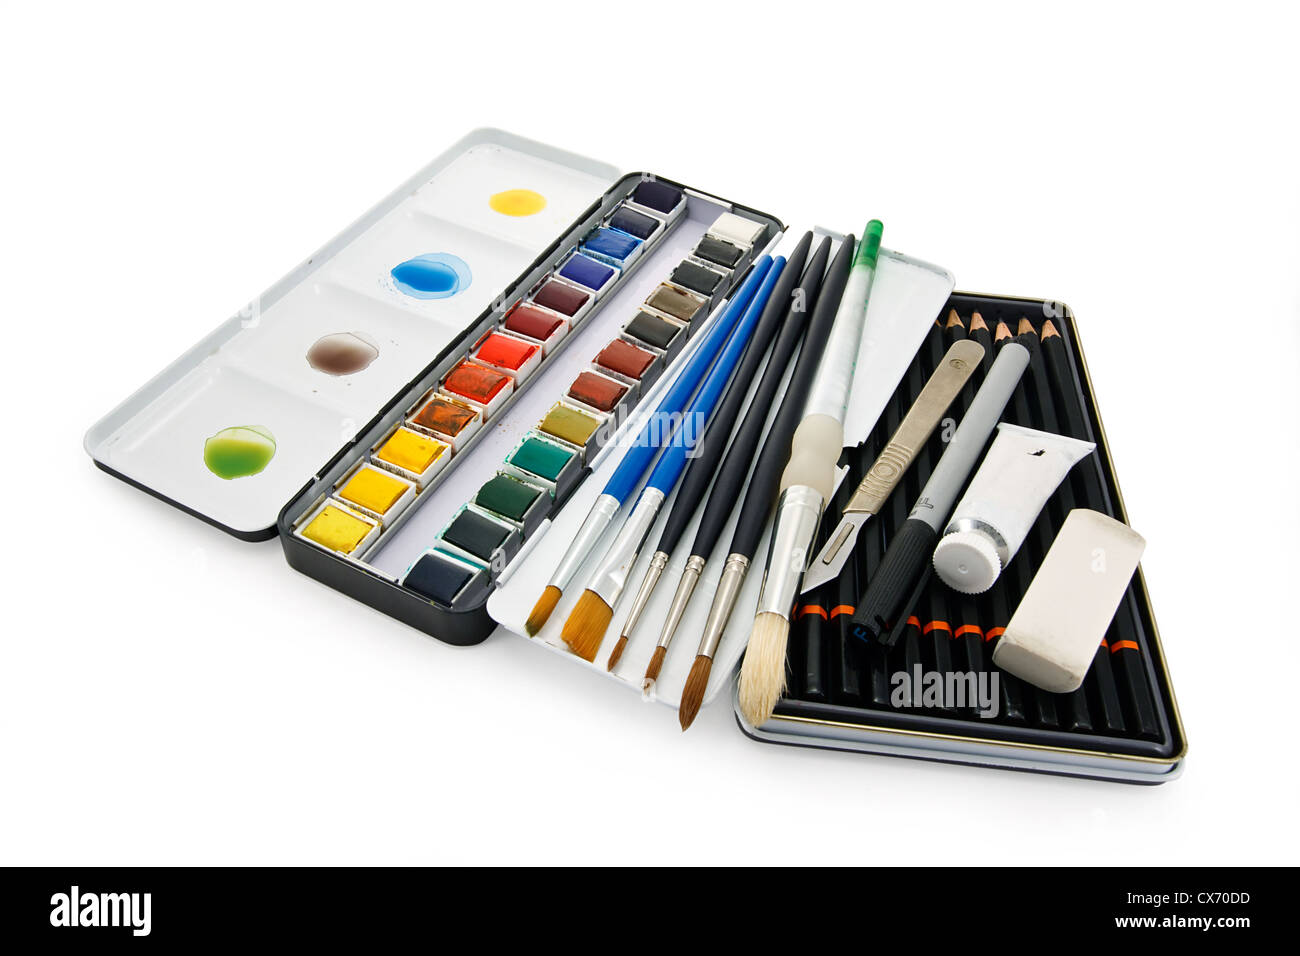 Arstists watercolor paint brushes, paints and equipment - Stock Image